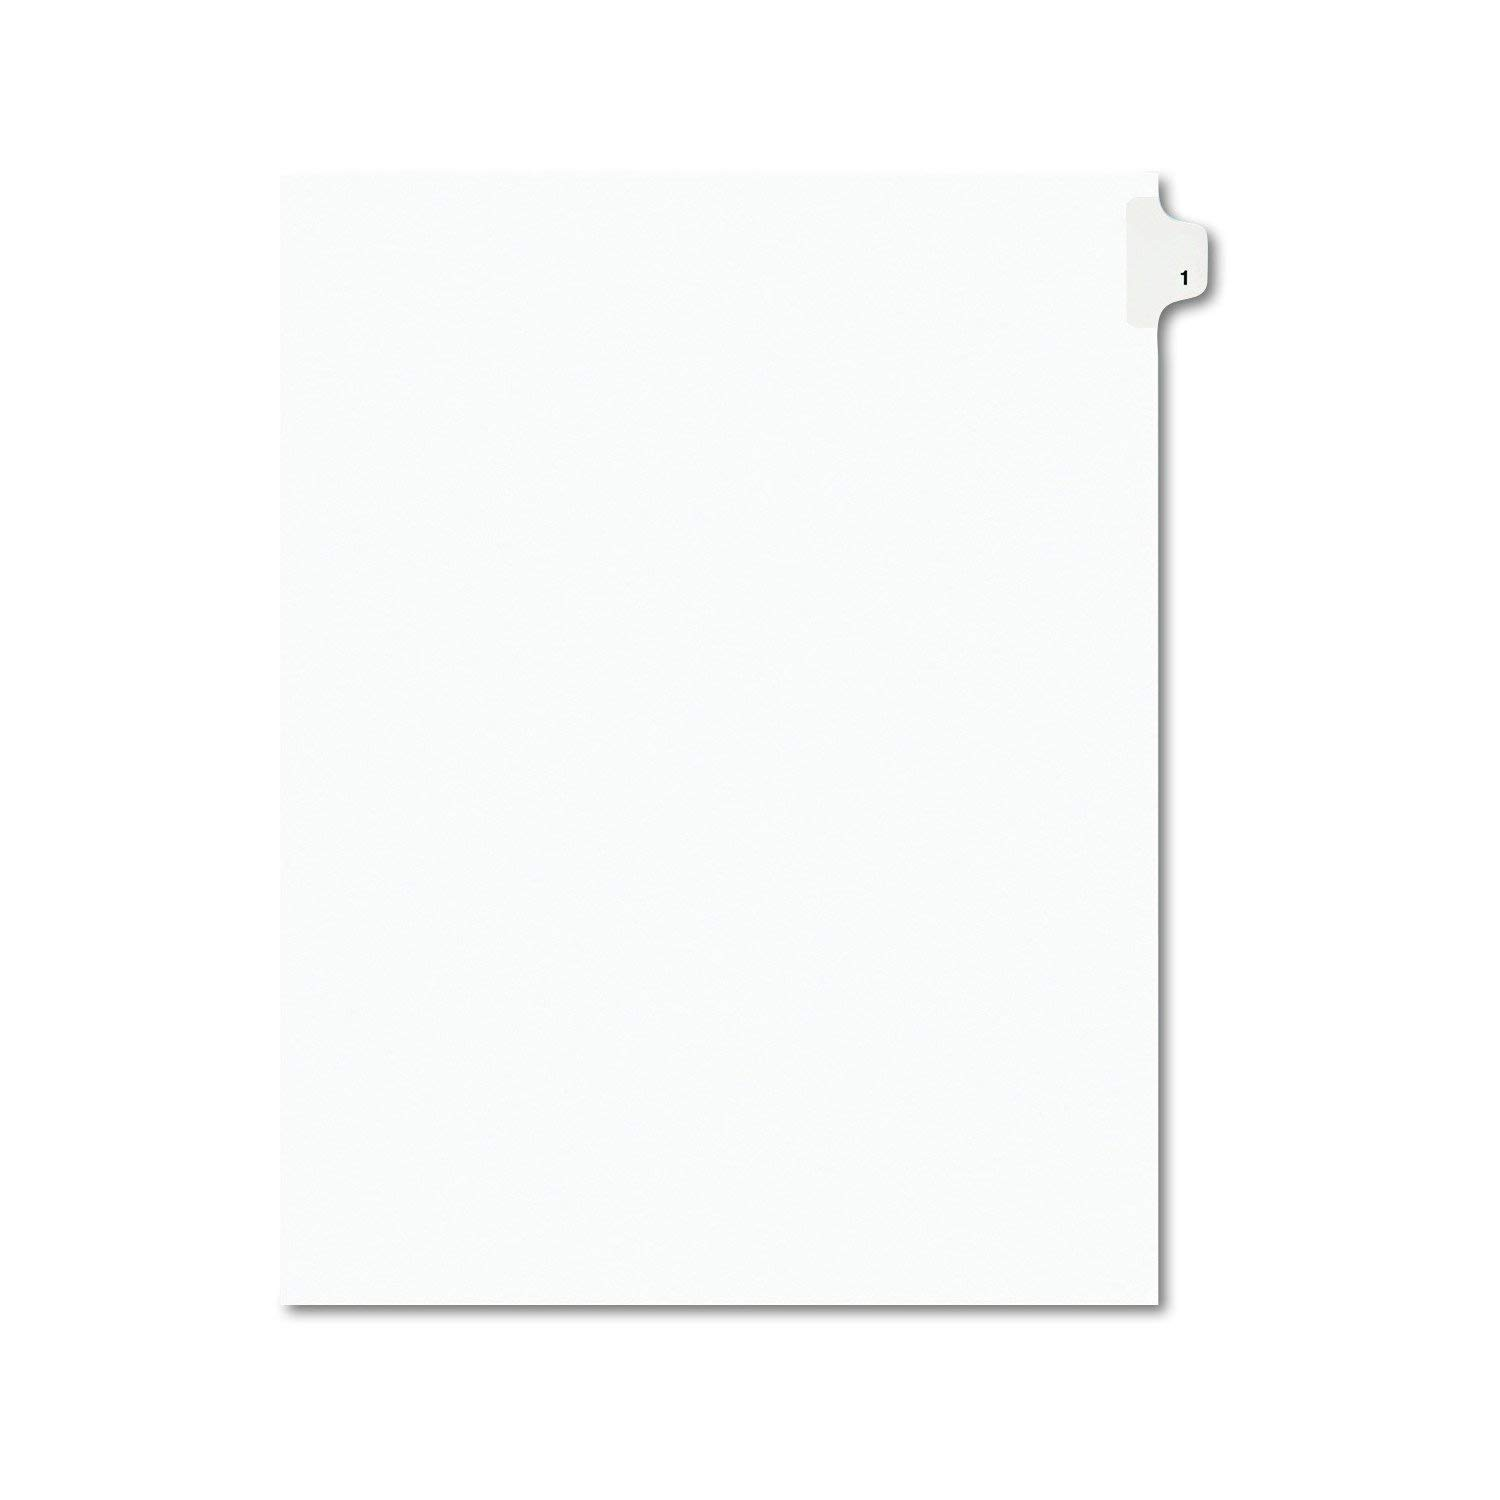 Individual Legal Exhibit Dividers, Avery Style, 1, Side Tab, 8.5 x 11 inches, Pack of 25 (11911), 20 Set, 500 tabs Total by AVERY